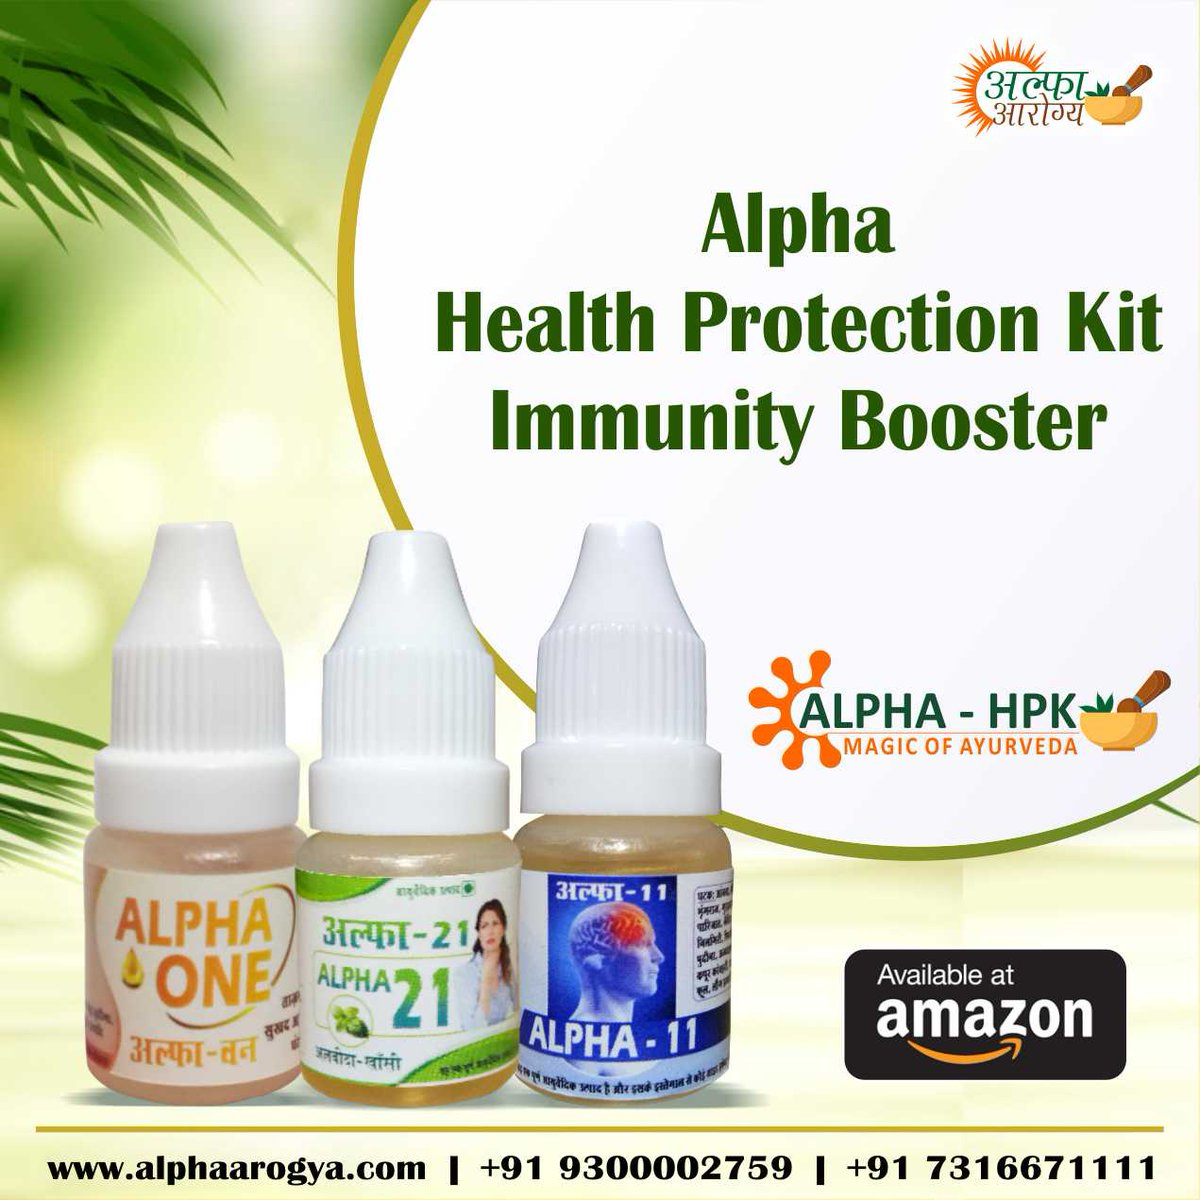 Alpha Health Protection Kit - Natural Immune Booster Available on Amazon.  https://t.co/IxcAyaJqTK | +91 9300002759 | +91 7316671111  Ayurvedic Product Online | Alpha Arogya https://t.co/Jw2XOXvSMC  #Covid_19 #chinaindiaborder #immunesystem https://t.co/hGVHv8KqL5